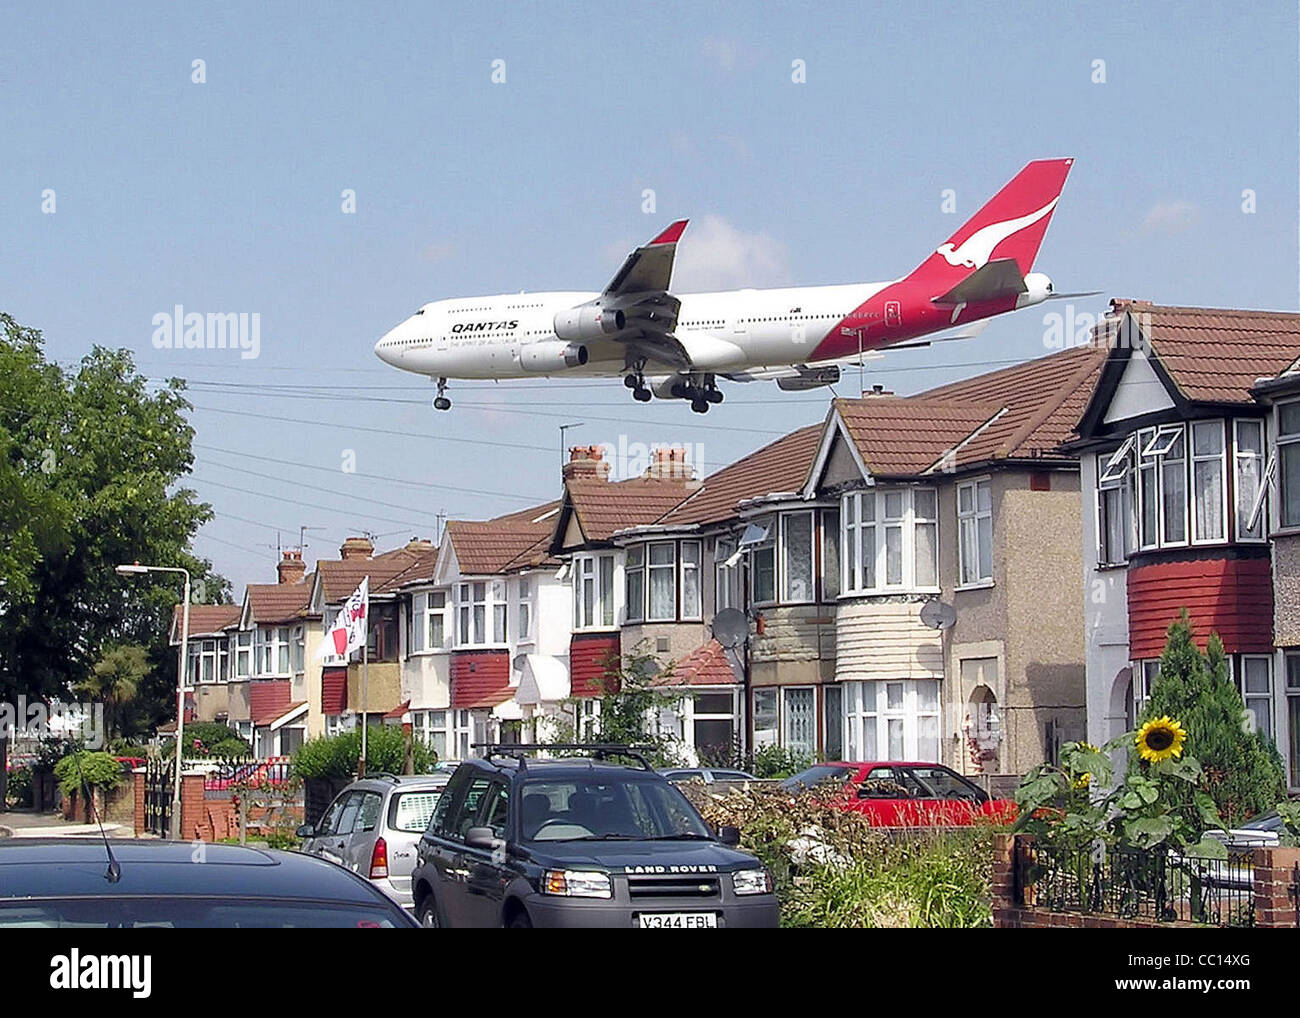 A Qantas Boeing 747-400 (registration unknown) approaching runway 27L at London Heathrow Airport - Stock Image